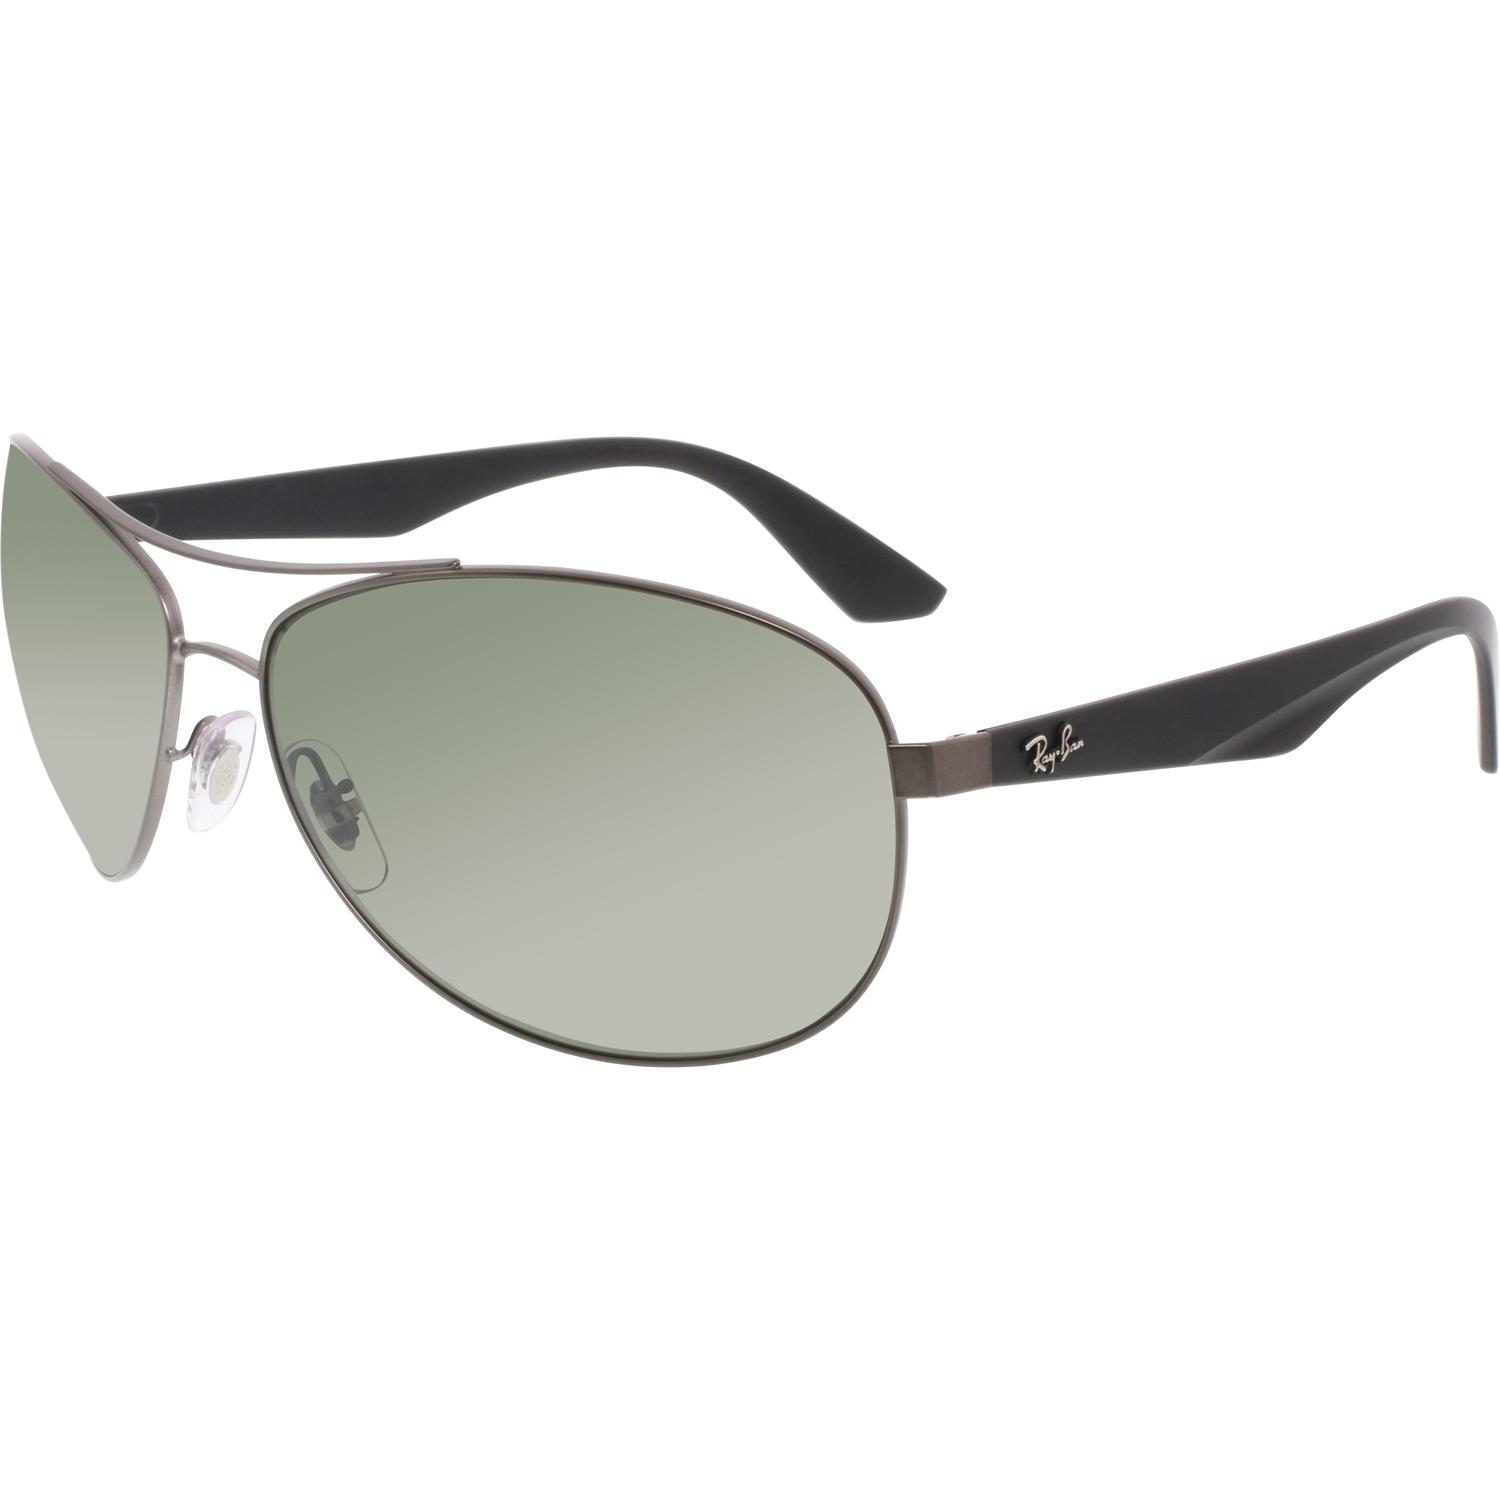 ce744fd3bb discount code for ray ban rx6295 clubmaster eyeglasses 2808 brushed  gunmetal 51mm 89502 63e35  get ray ban sunglasses at walmart a34d0 f93ff